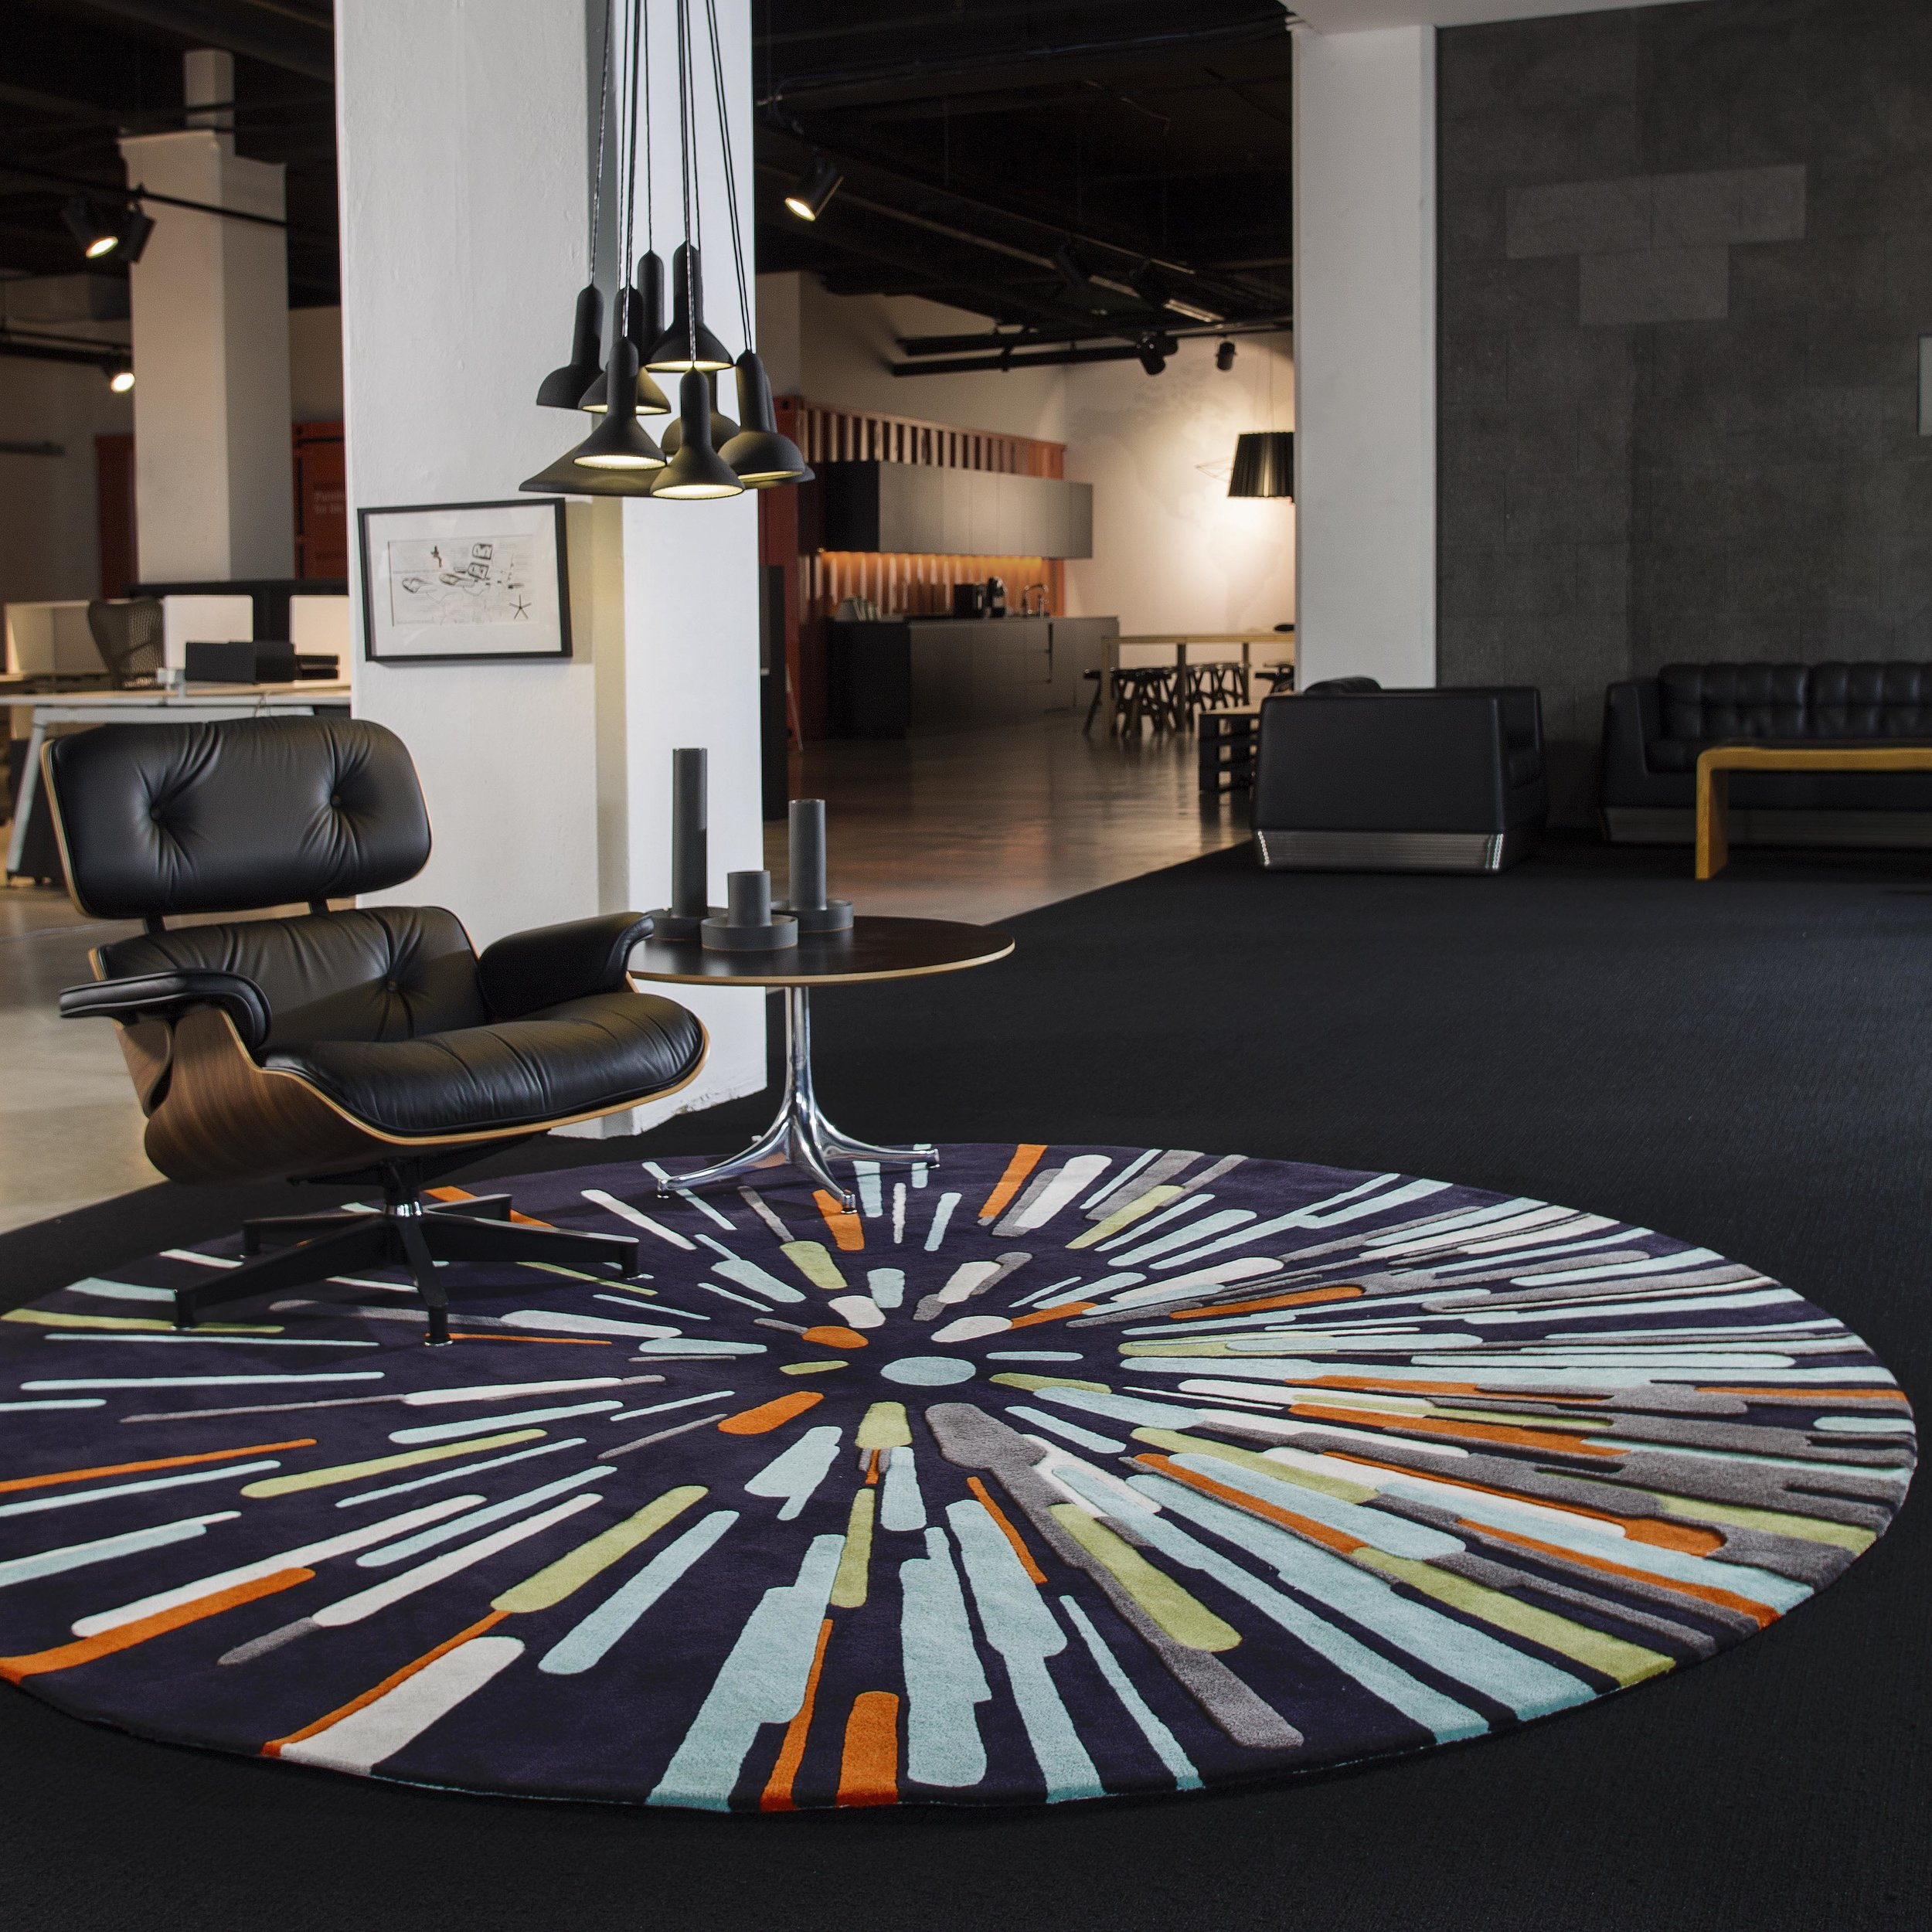 A $2000 DESIGN FEE AND YOUR WINNING RUG TO KEEP -